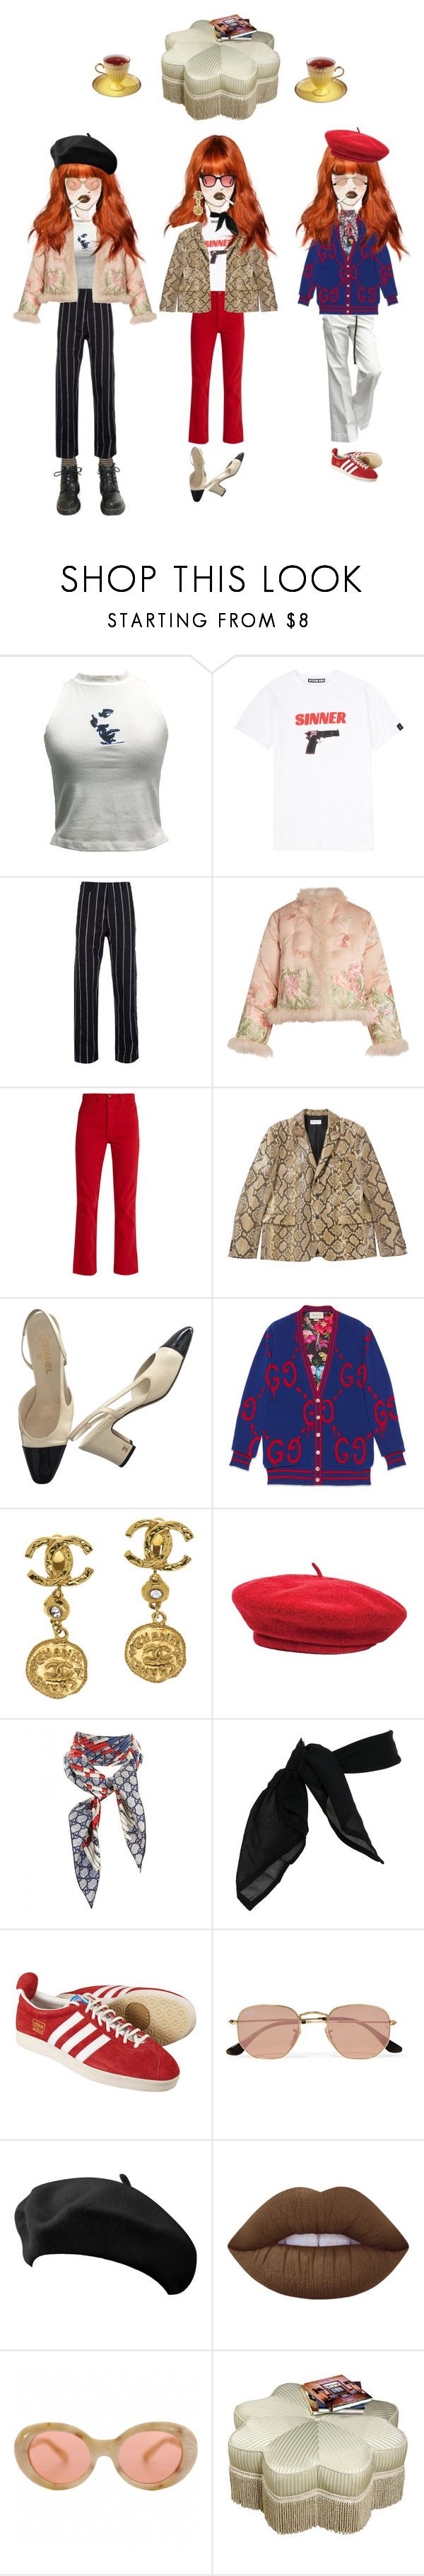 """""""travel series#30"""" by oceanelaurent ❤ liked on Polyvore featuring Ted Baker, Hyein Seo, Uma Wang, Dr. Martens, Alexander McQueen, Bliss and Mischief, Yves Saint Laurent, Chanel, Banana Republic and Gucci"""